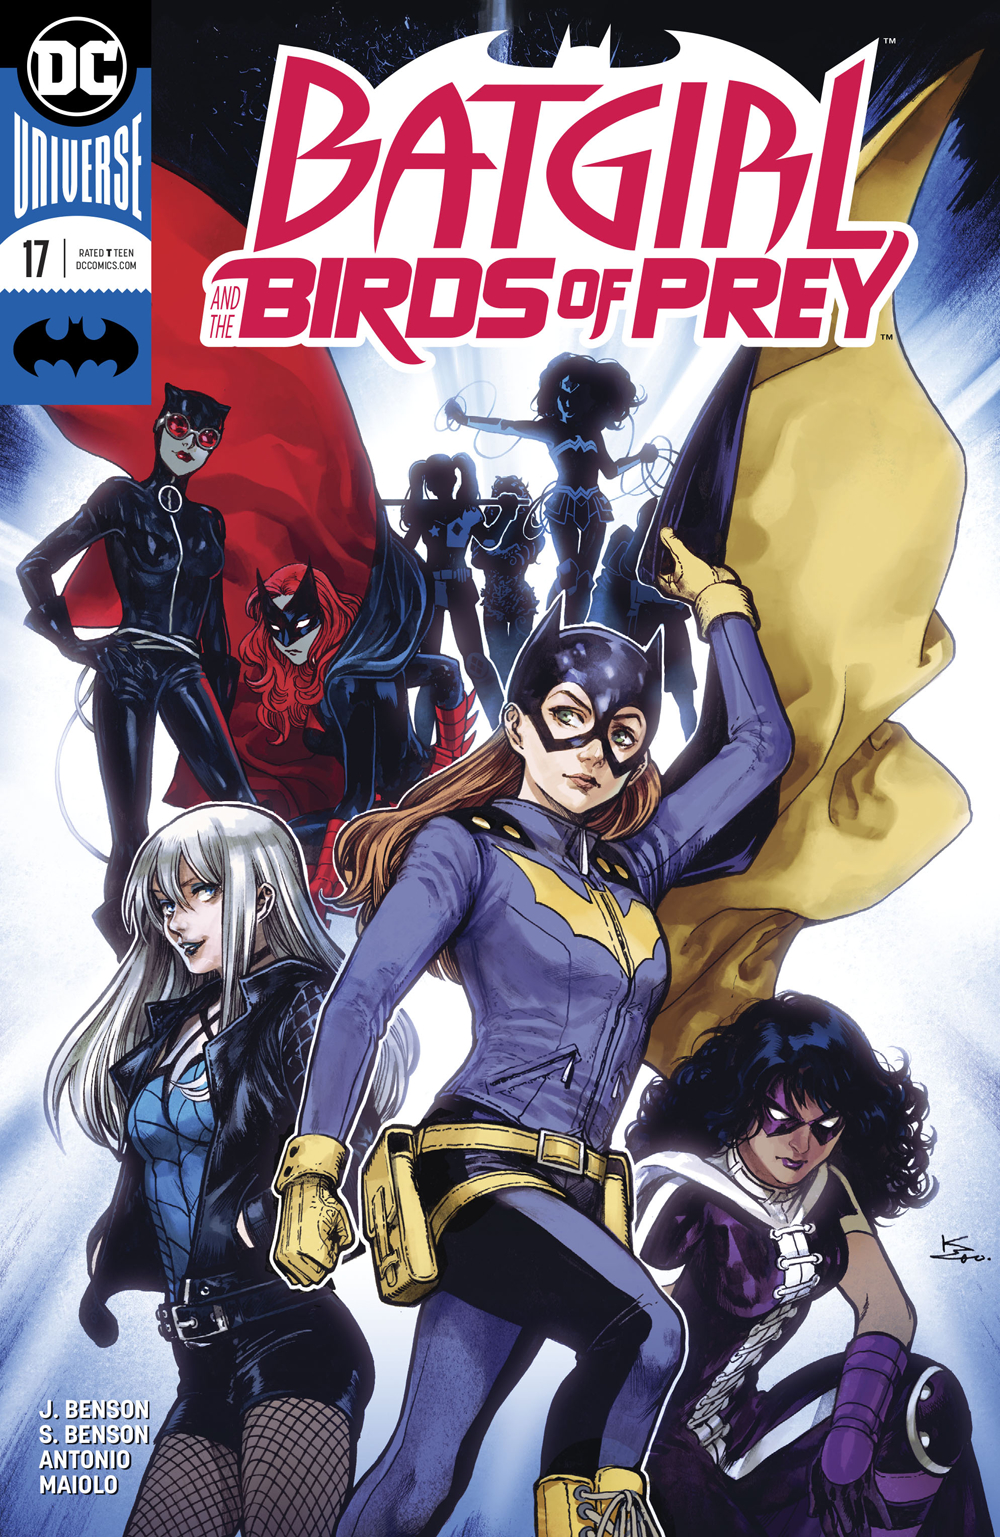 Oct170230 Batgirl And The Birds Of Prey 17 Var Ed Previews World